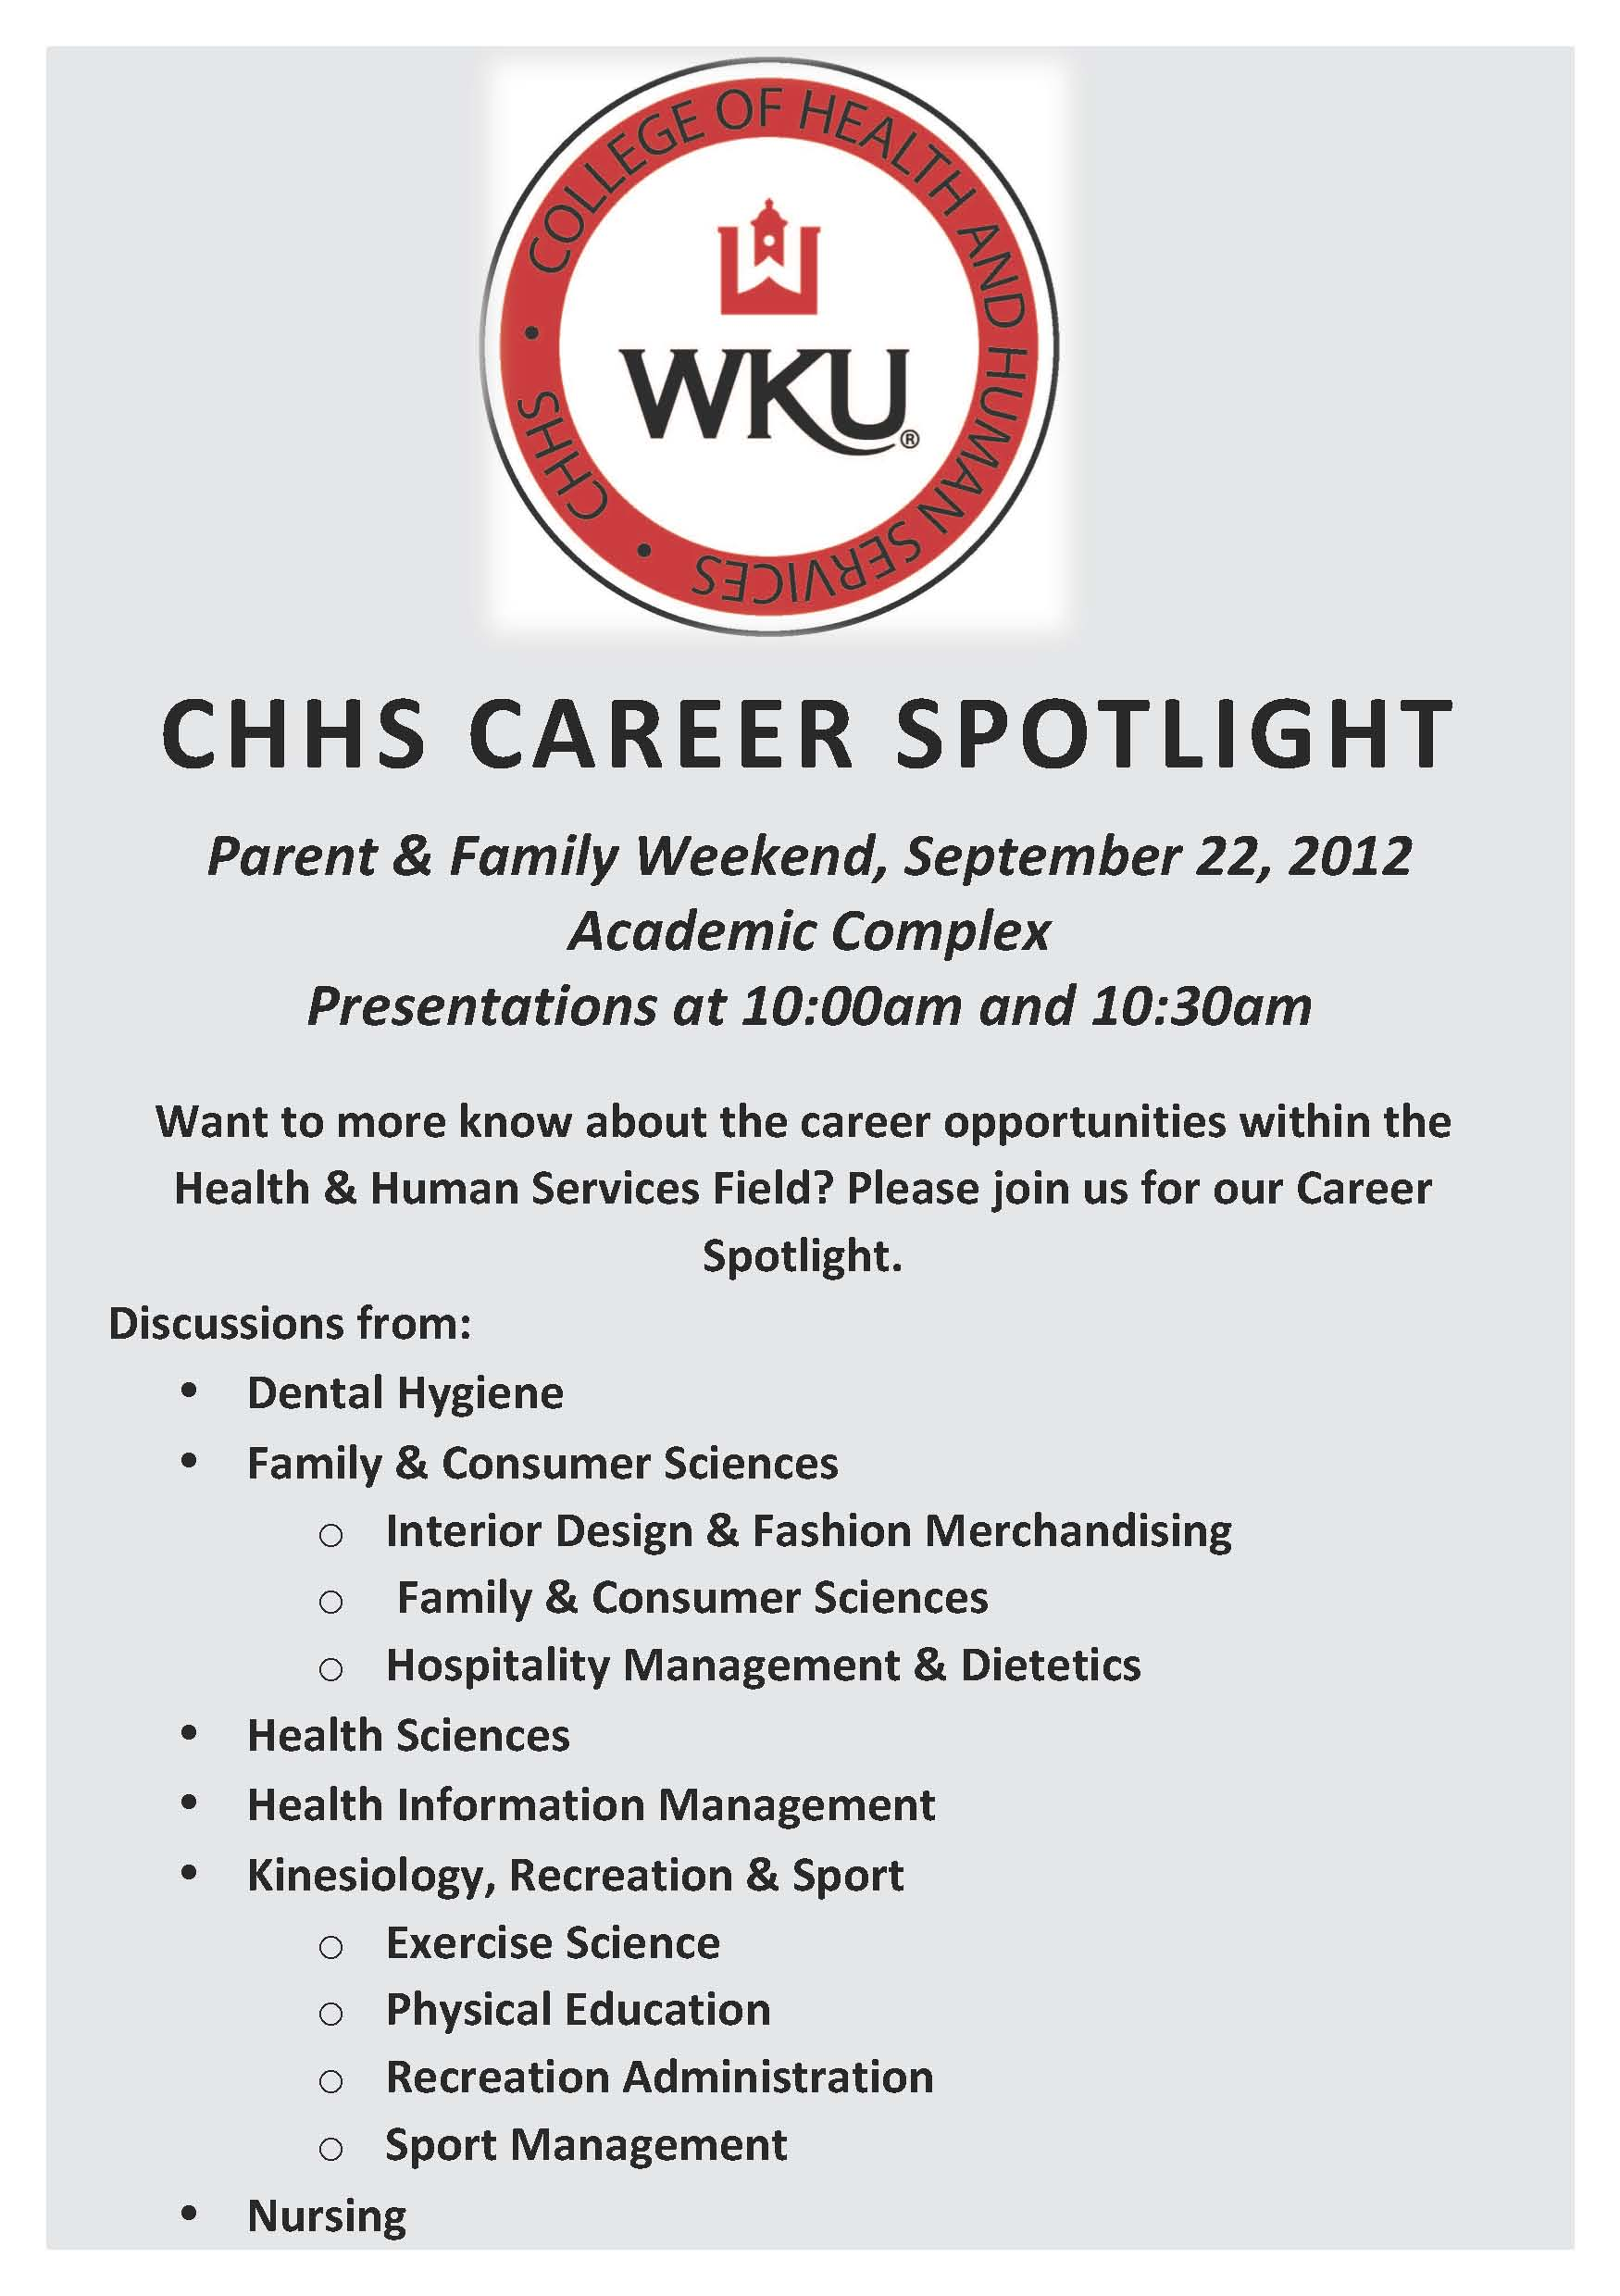 CHHS-career-spotlight